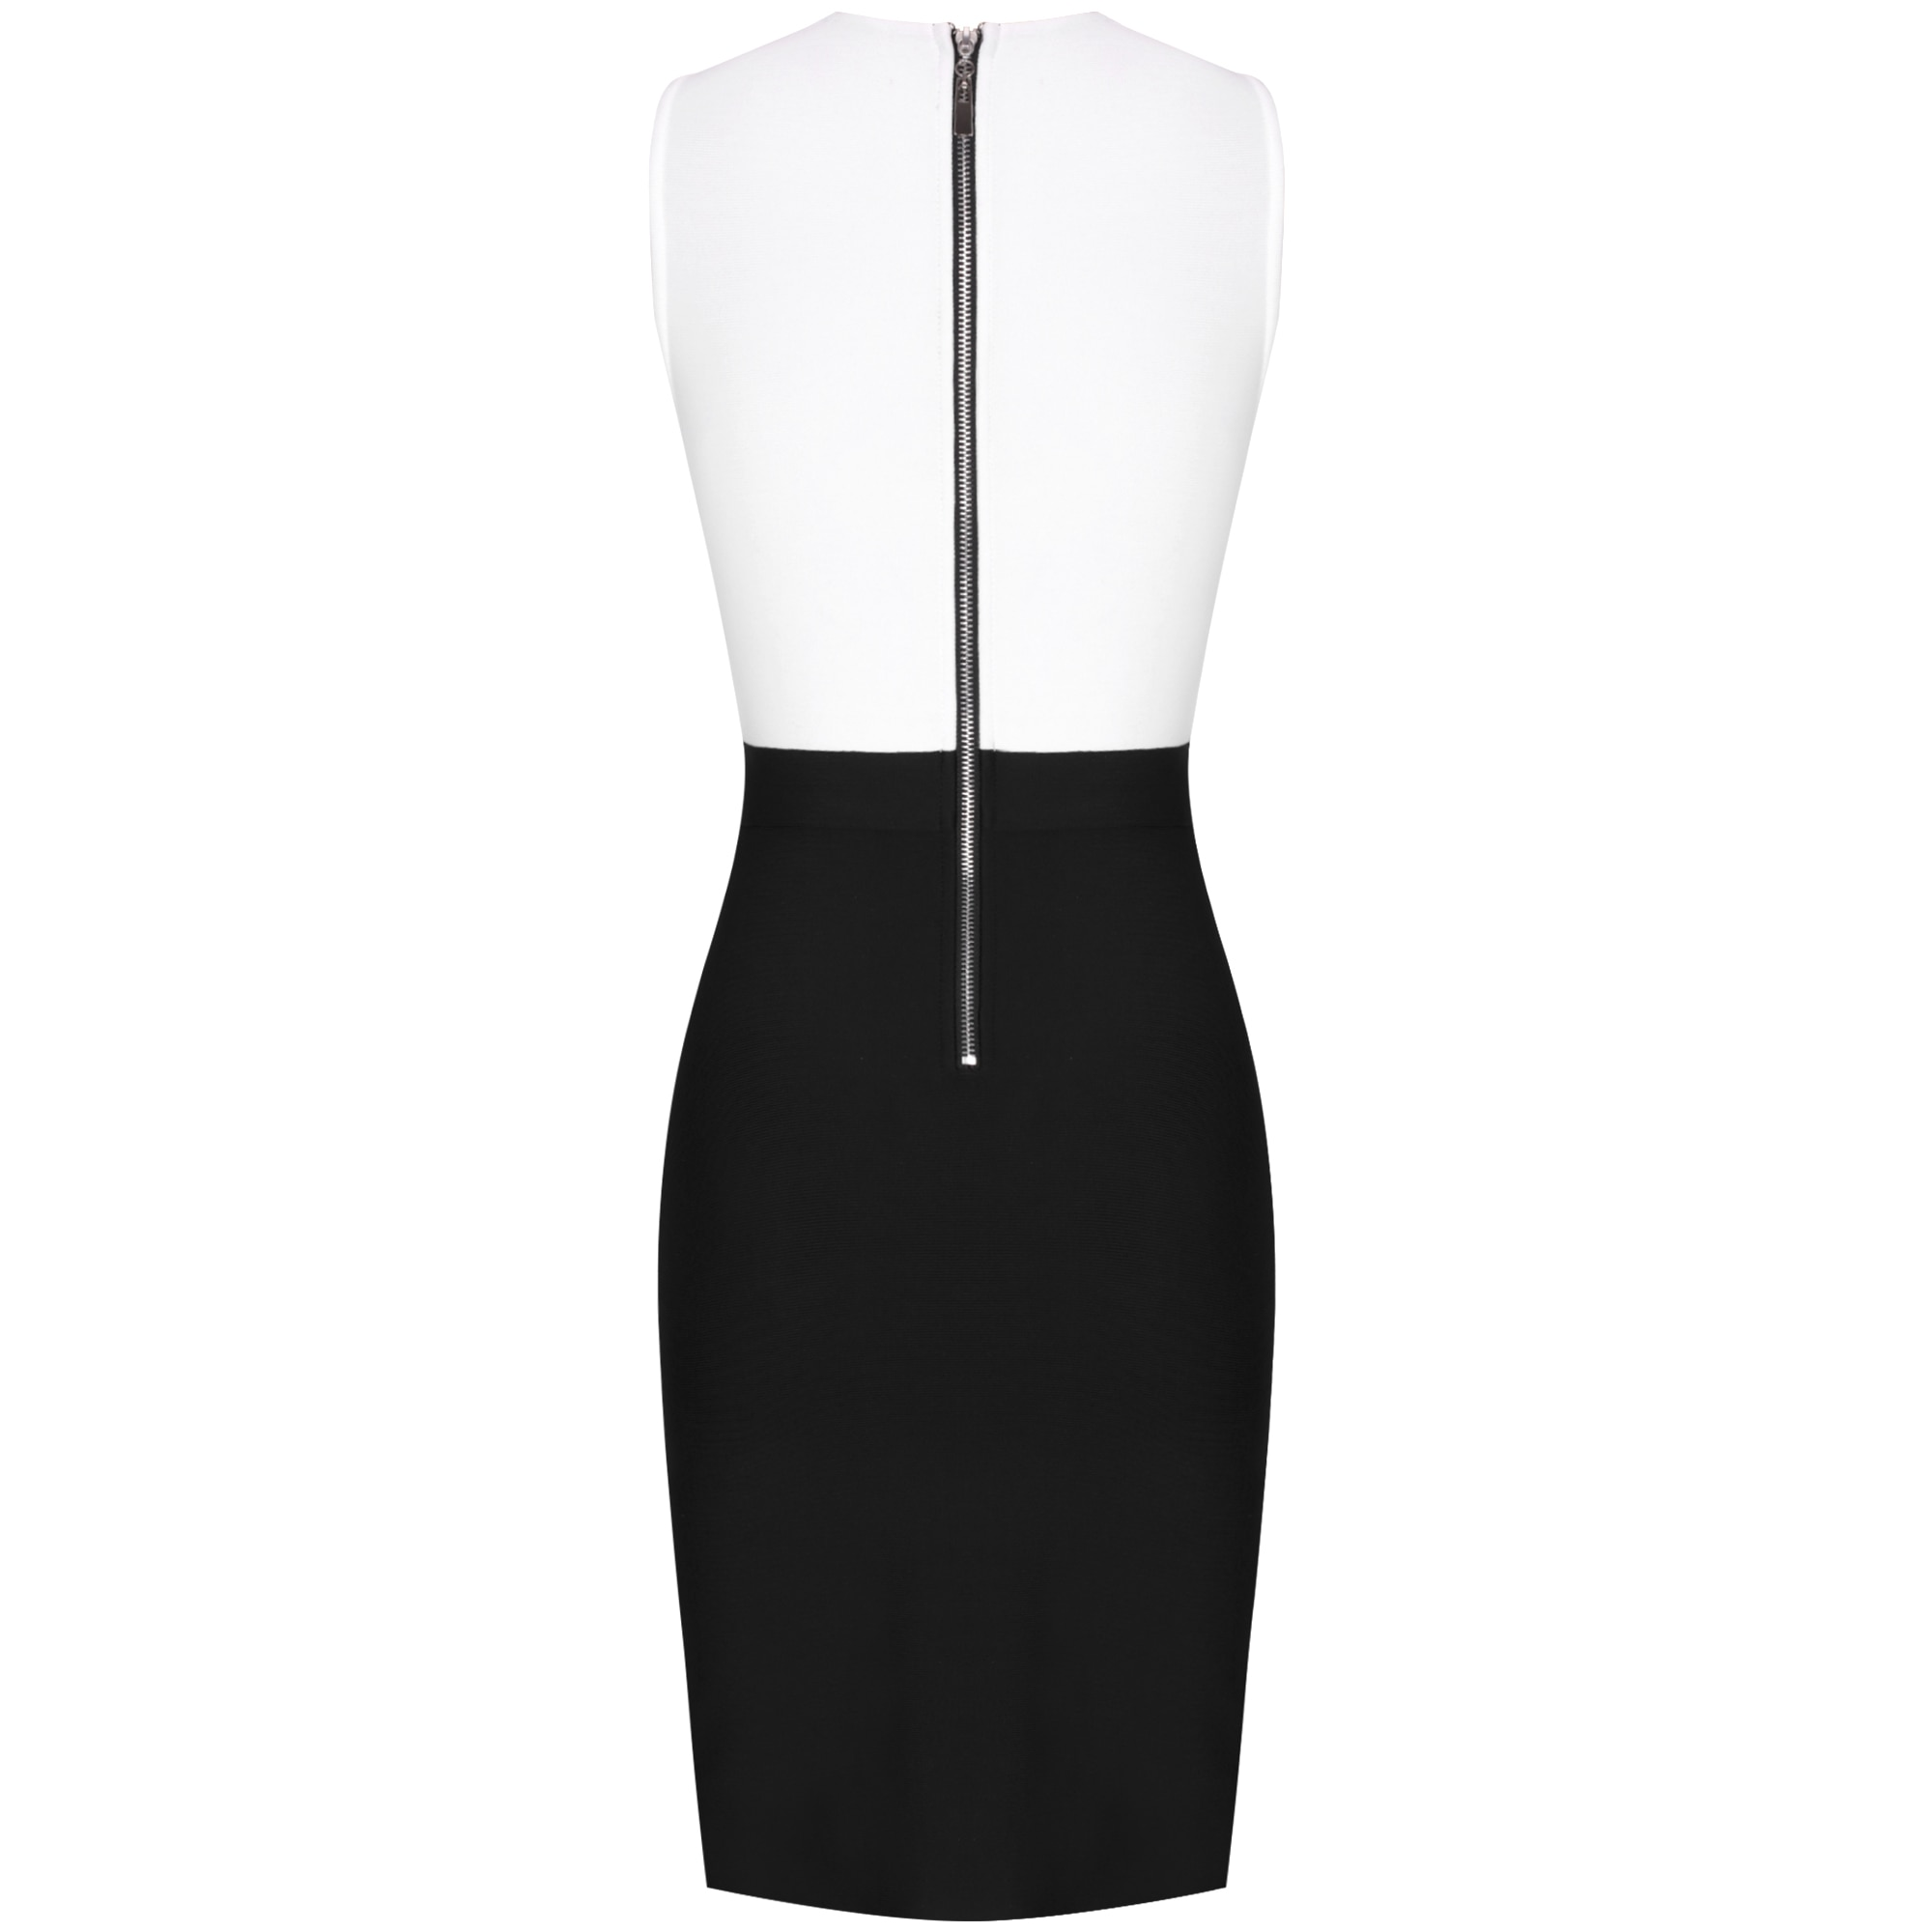 Ocstrade Bandage Dress 2021 Black White Bandage Dress Bodycon Summer Mesh Insert Sexy Party Dress Club Outfits for Women Dresses  6